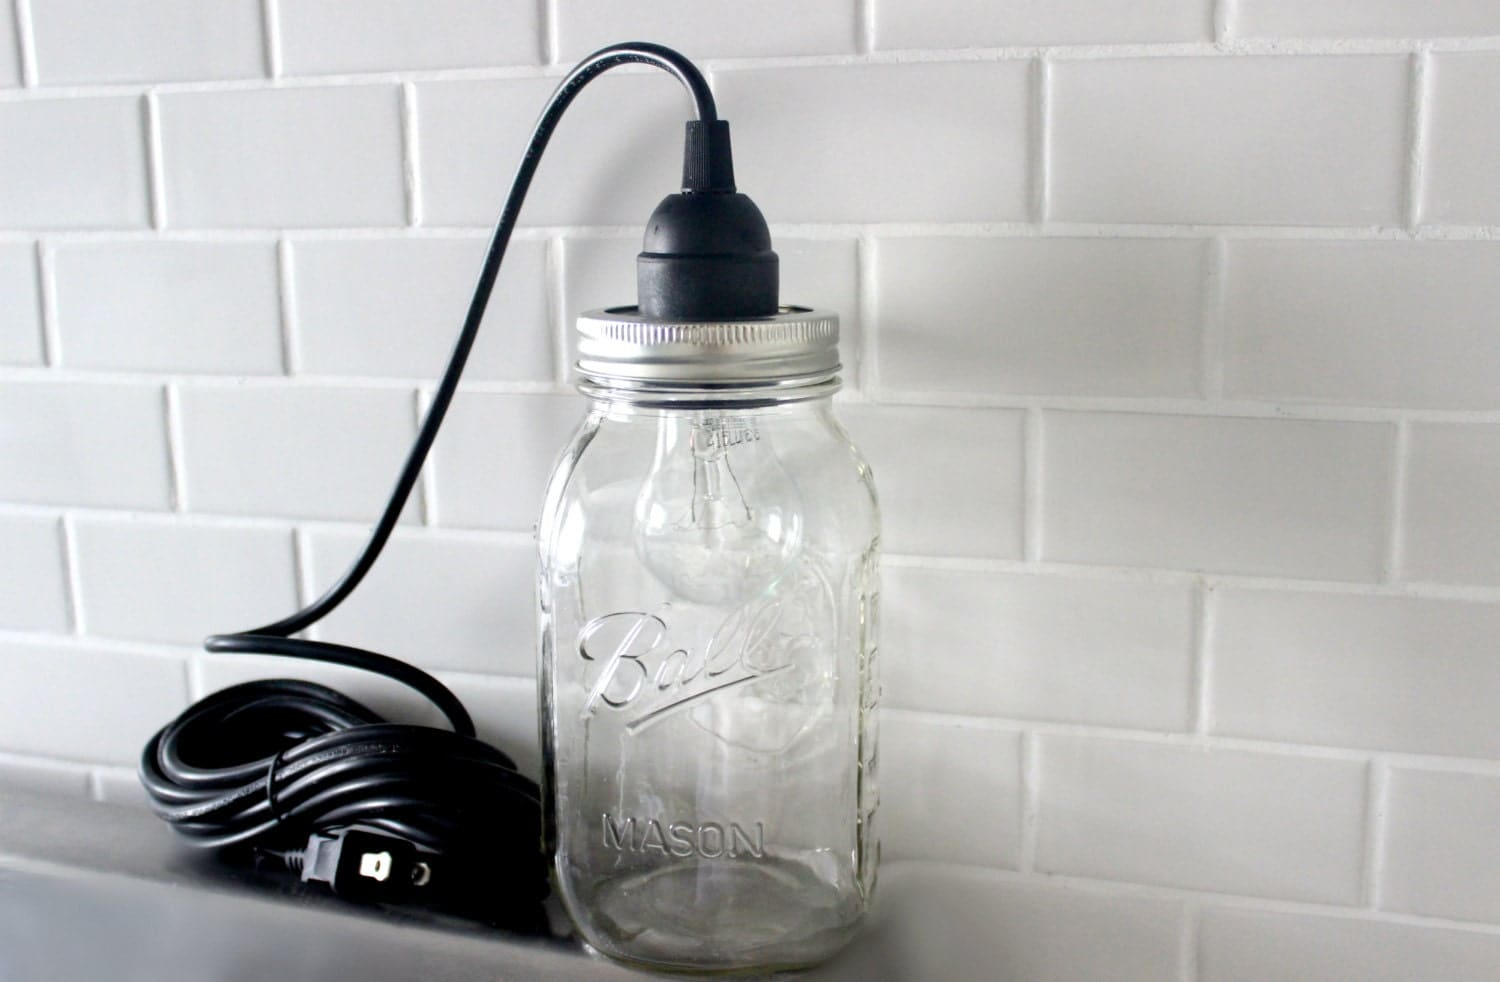 mason jar chandelier vintage kitchen lighting Mason Jar Pendant Light Vintage Hanging Light mason jar string light fixture kitchen light Mason pendent drop light with vintage bulb